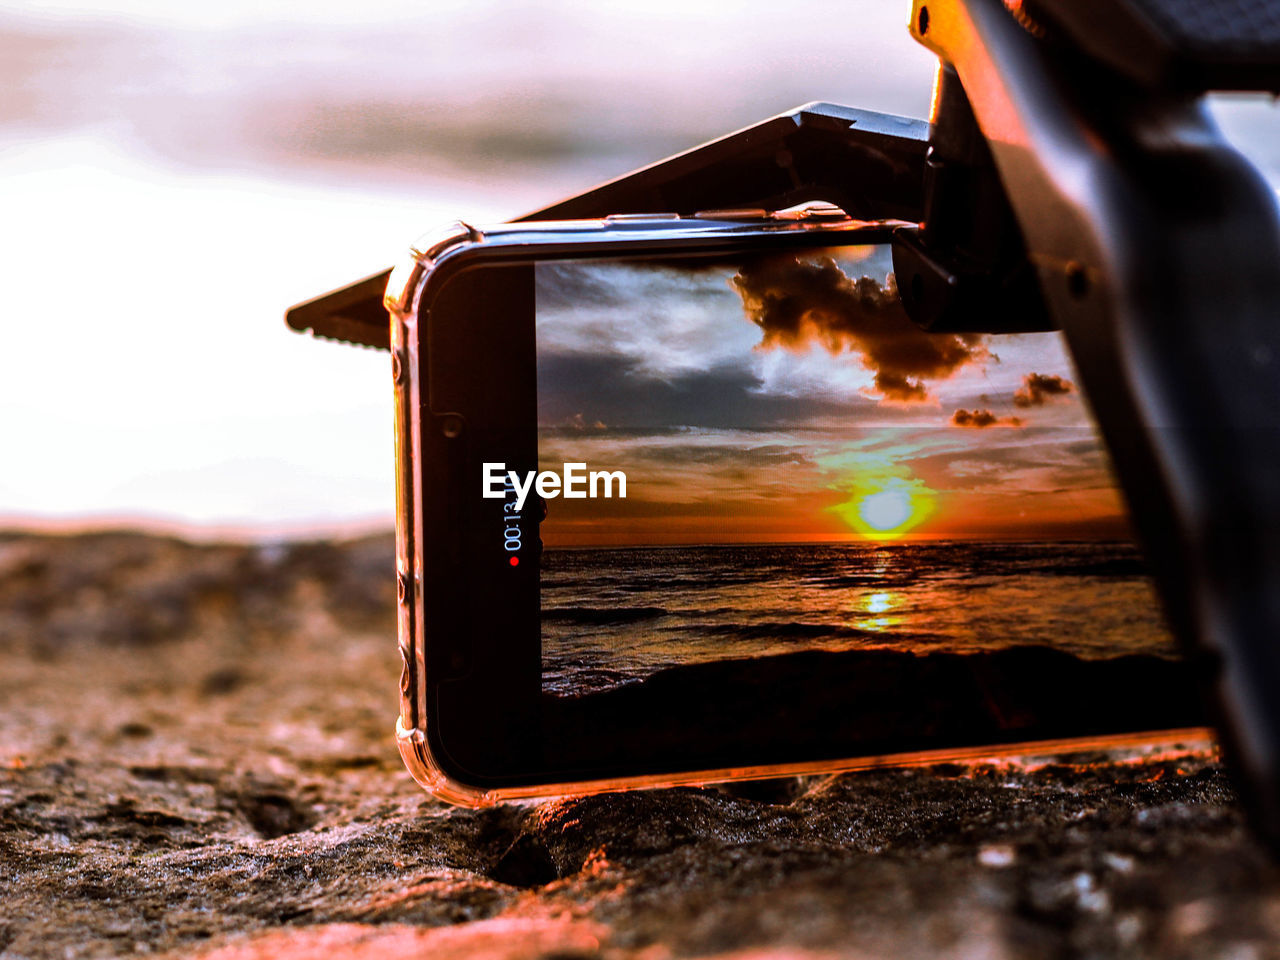 sky, sunset, nature, technology, cloud - sky, communication, smart phone, land, close-up, selective focus, outdoors, water, wireless technology, mobile phone, screen, portable information device, scenics - nature, photography themes, focus on foreground, no people